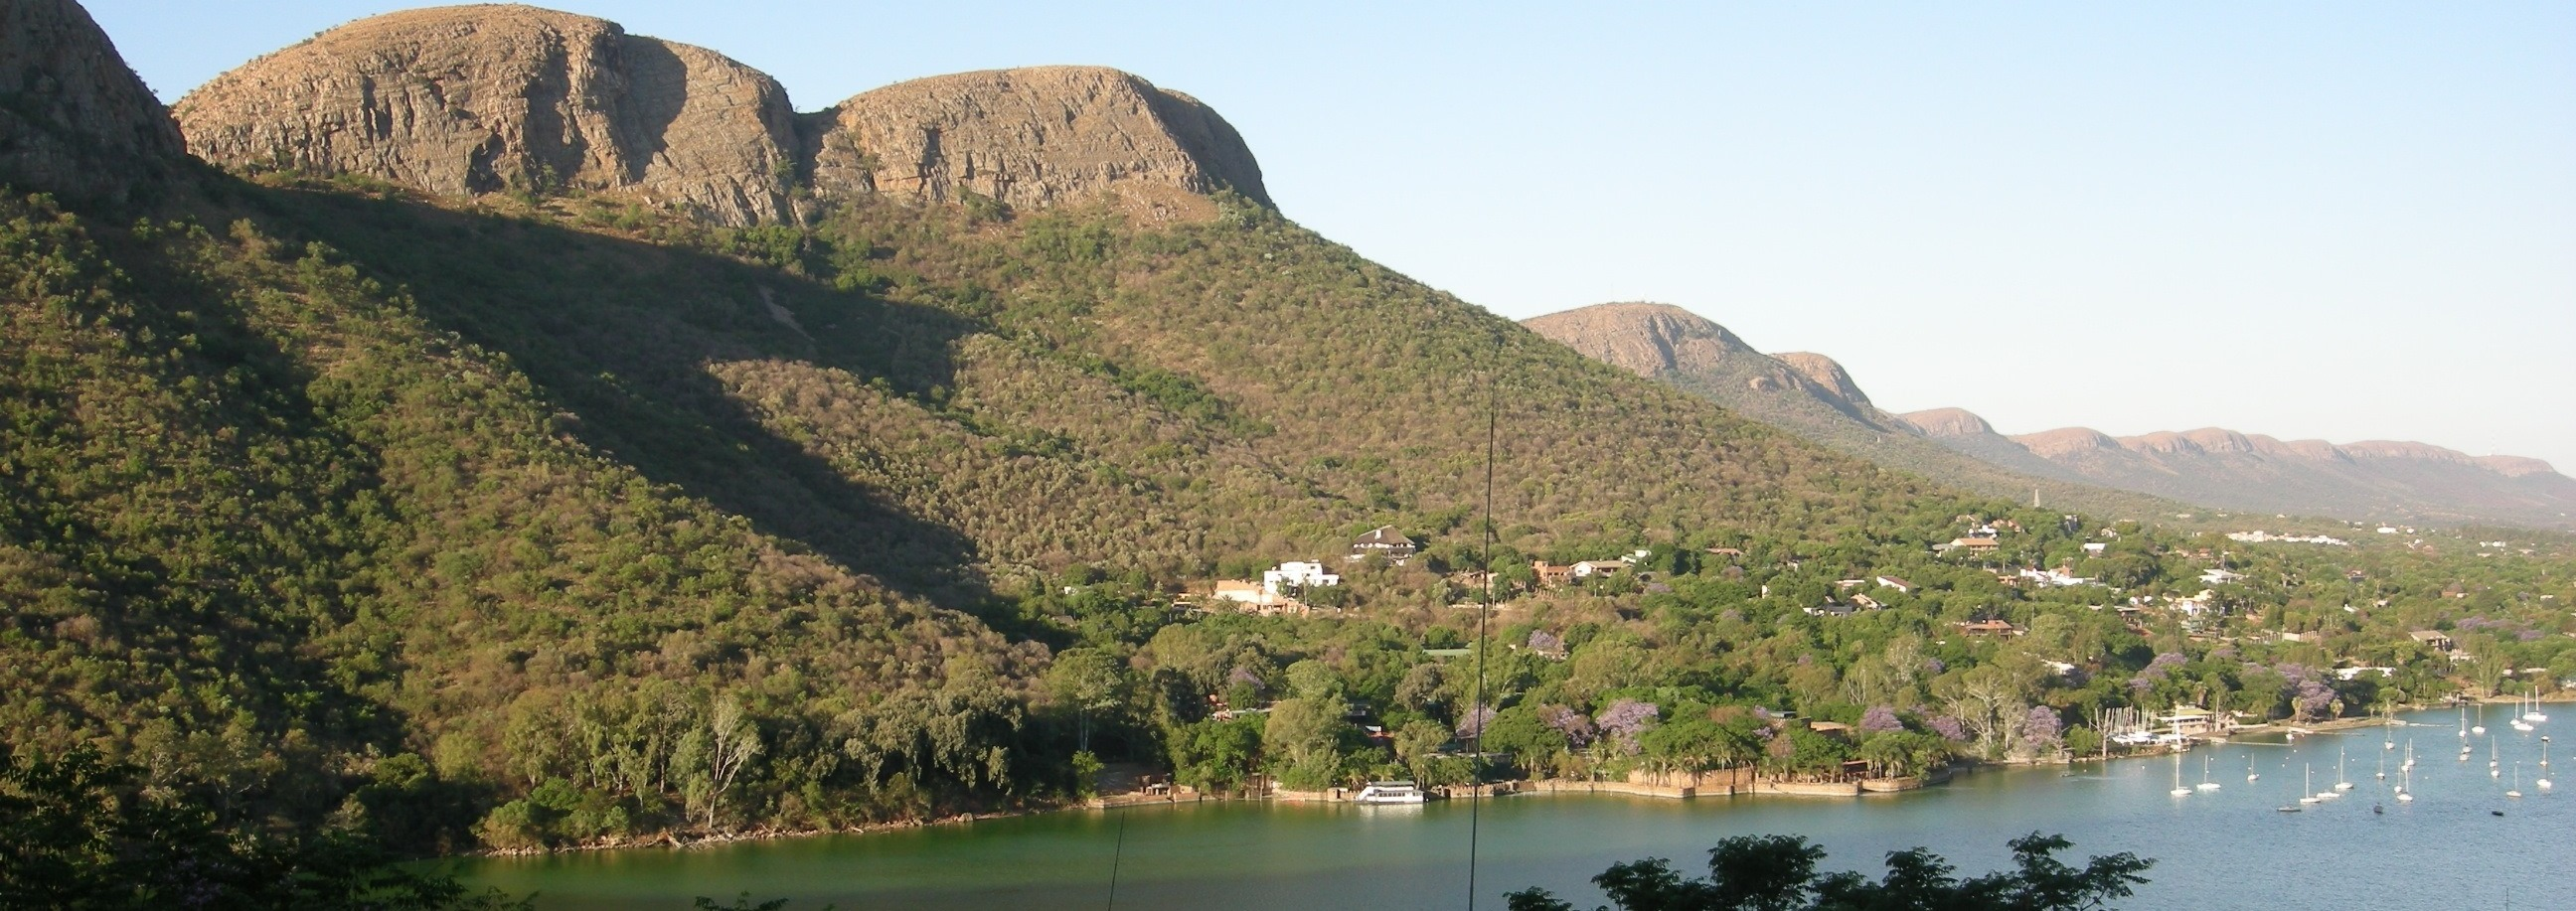 Real Estates in Hartbeespoort Dam by Engel & Völkers